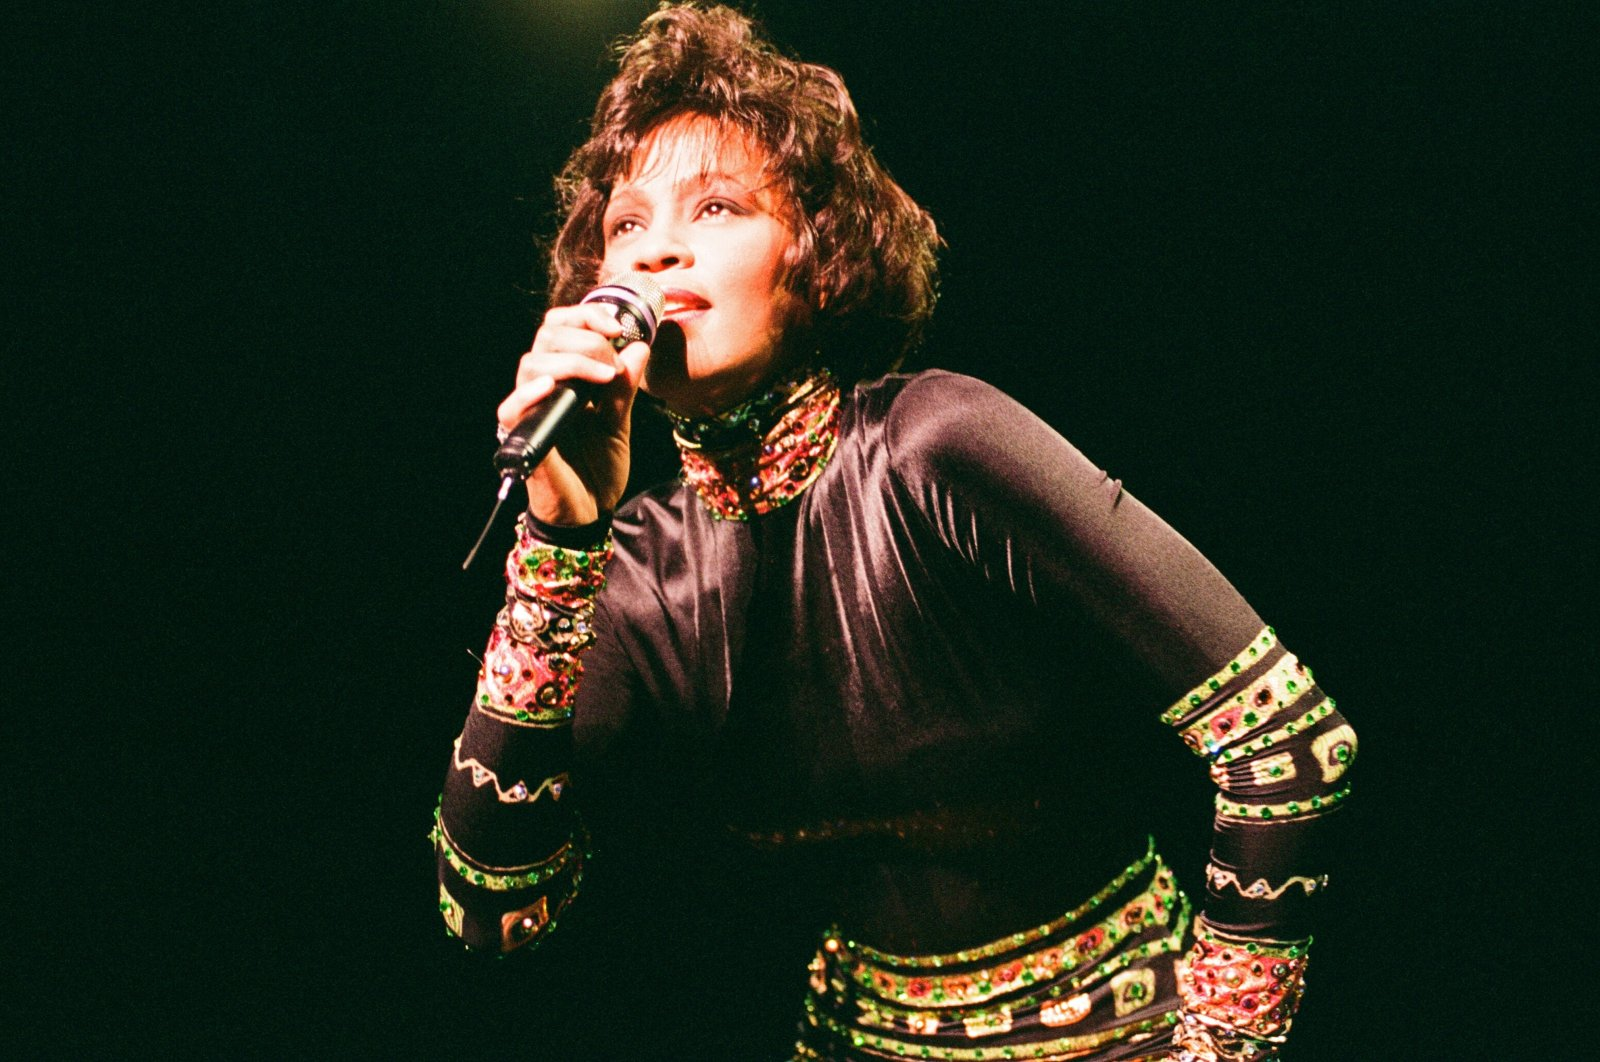 """Whitney Houston performs at a concert in Earls Court Exhibition Center as part of """"The Bodyguard World Tour,"""" London, Nov. 5, 1993. (Getty Images)"""